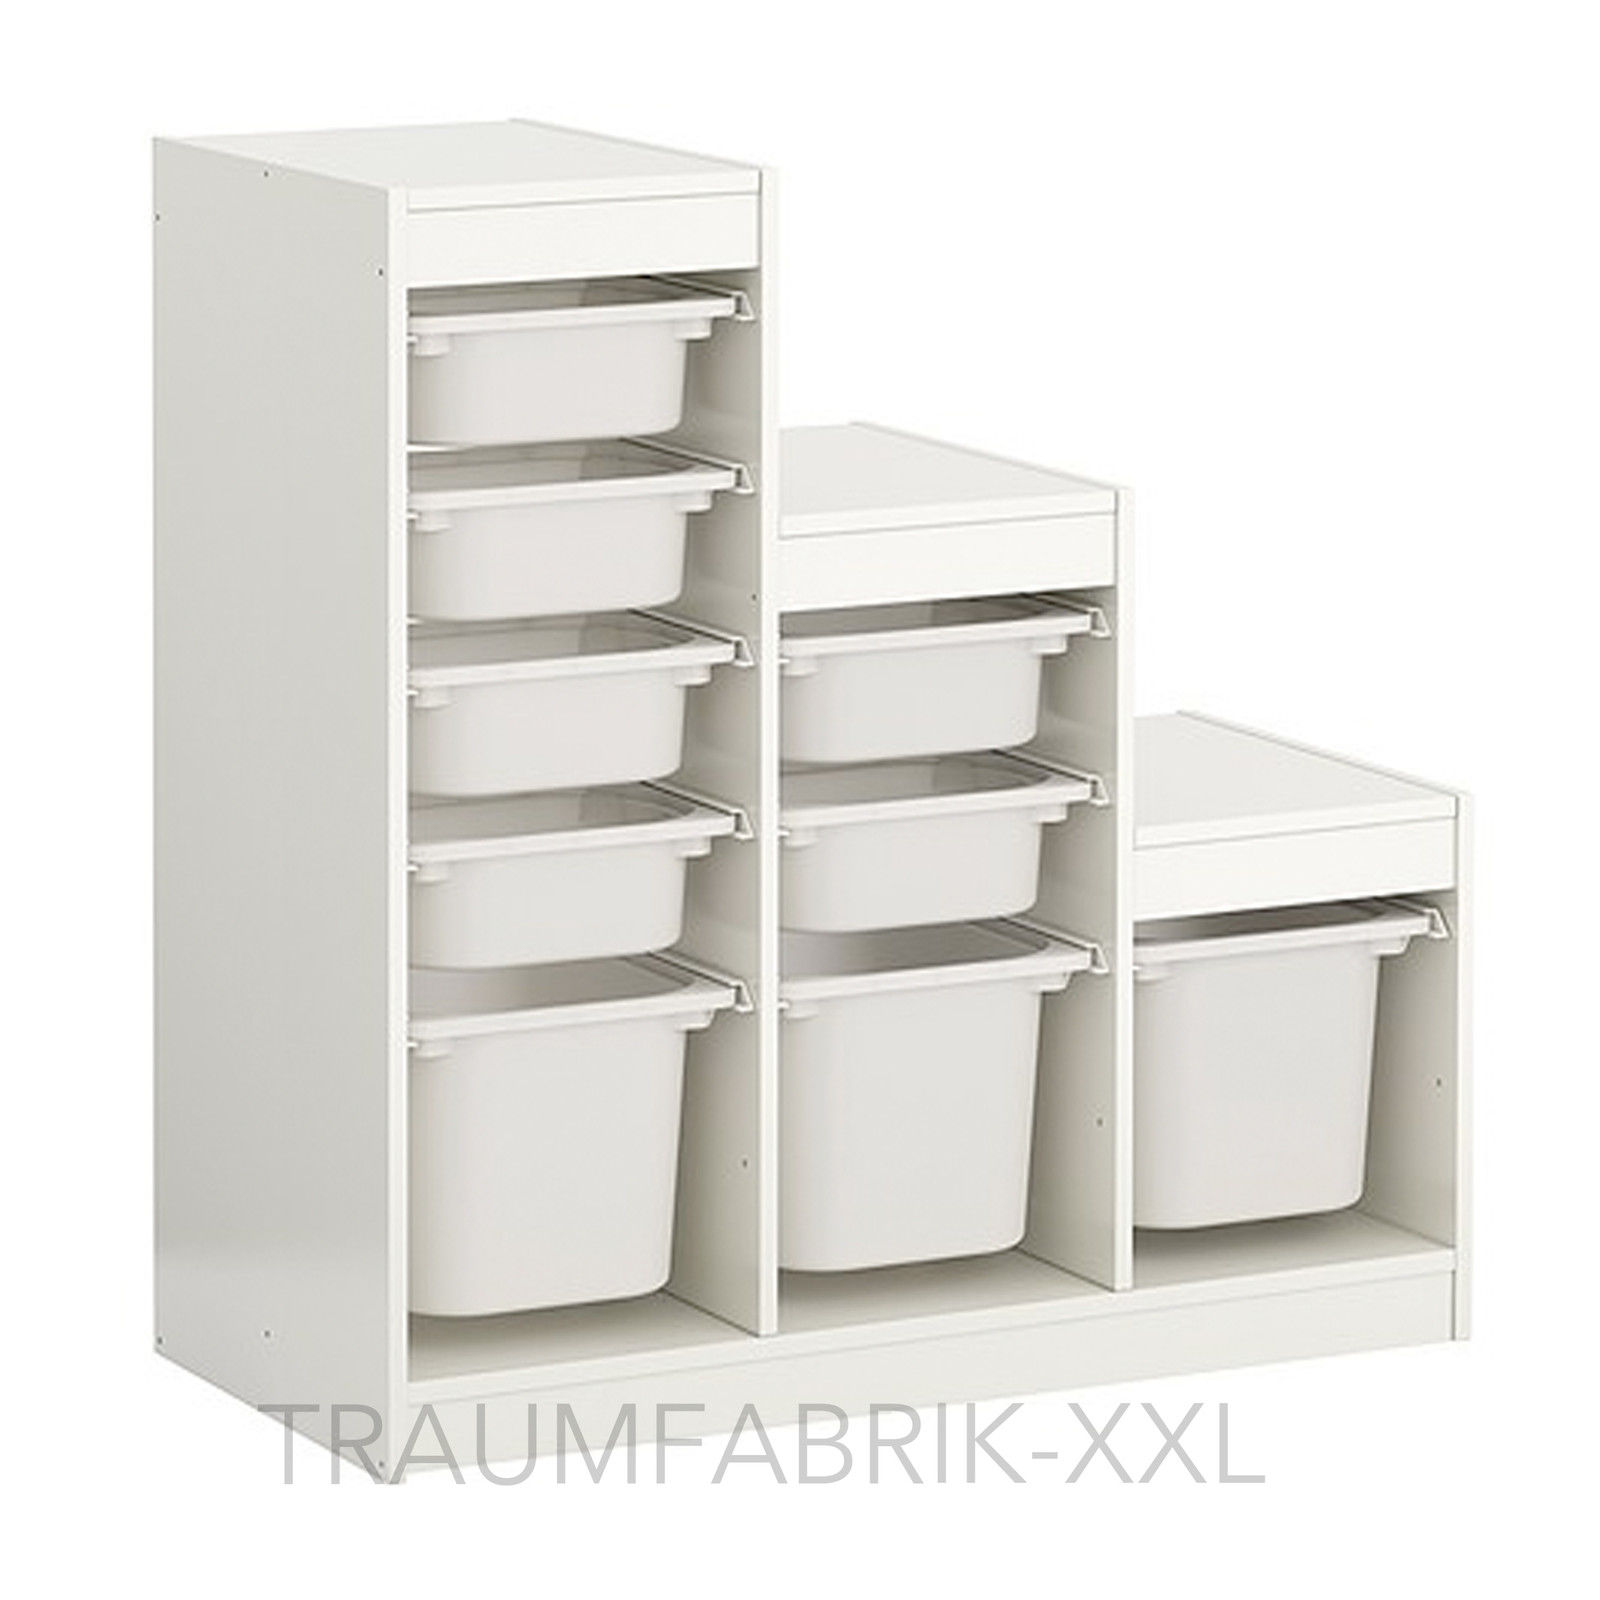 ikea spielzeugkiste spielzeugtruhe kinderm bel kinderregal regal aufbewahrung traumfabrik xxl. Black Bedroom Furniture Sets. Home Design Ideas